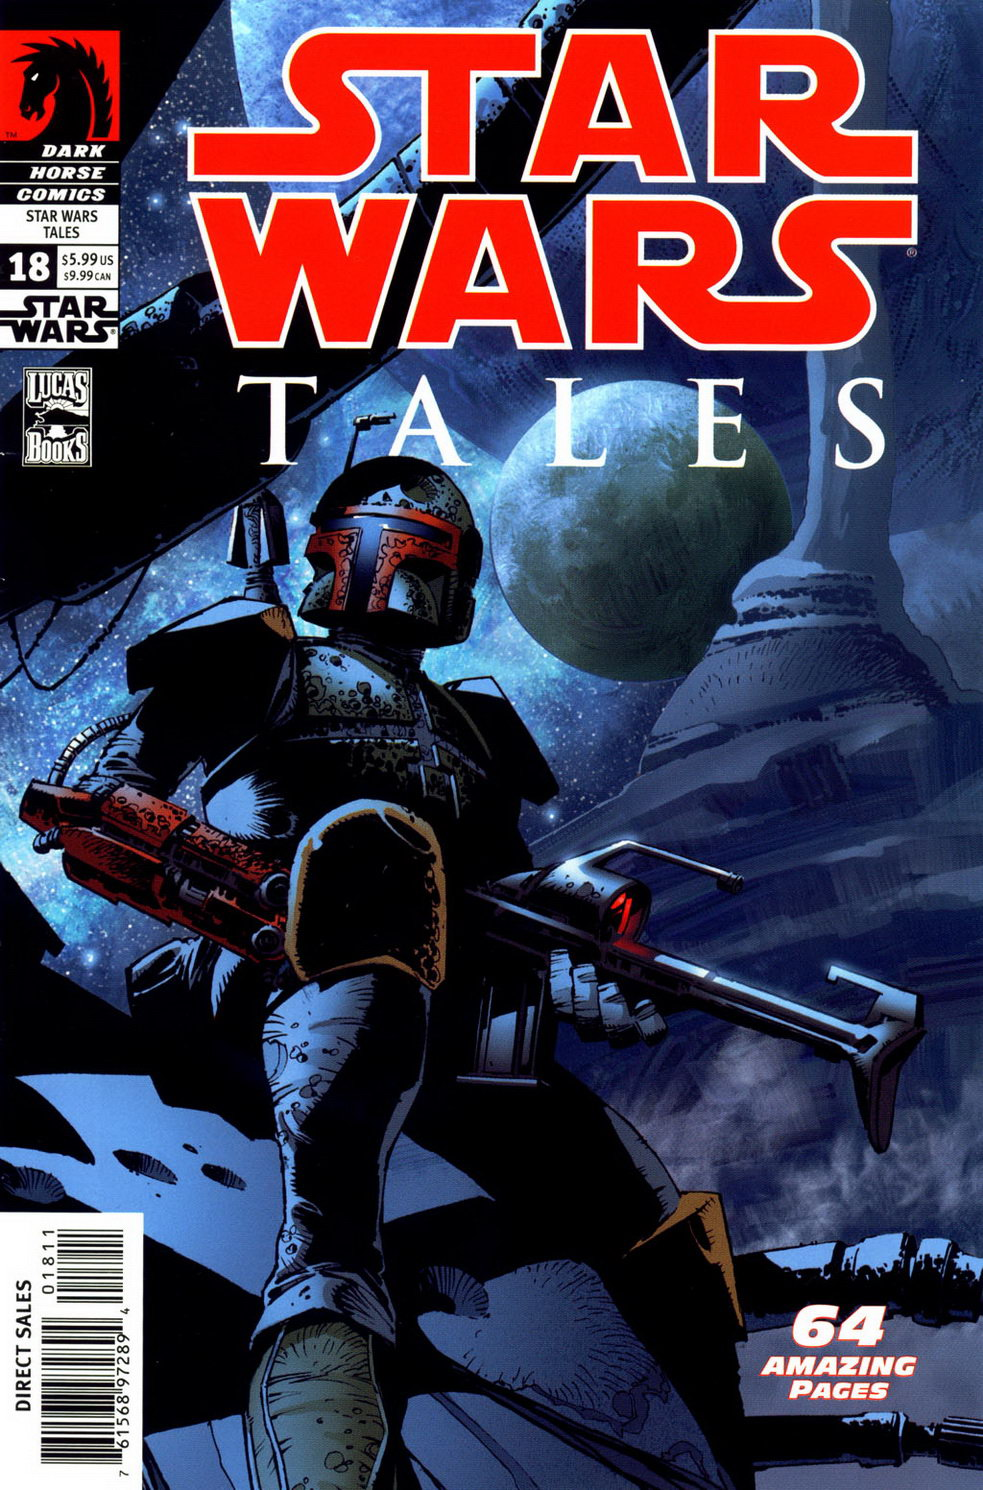 Star Wars Tales: The Way of the Warrior